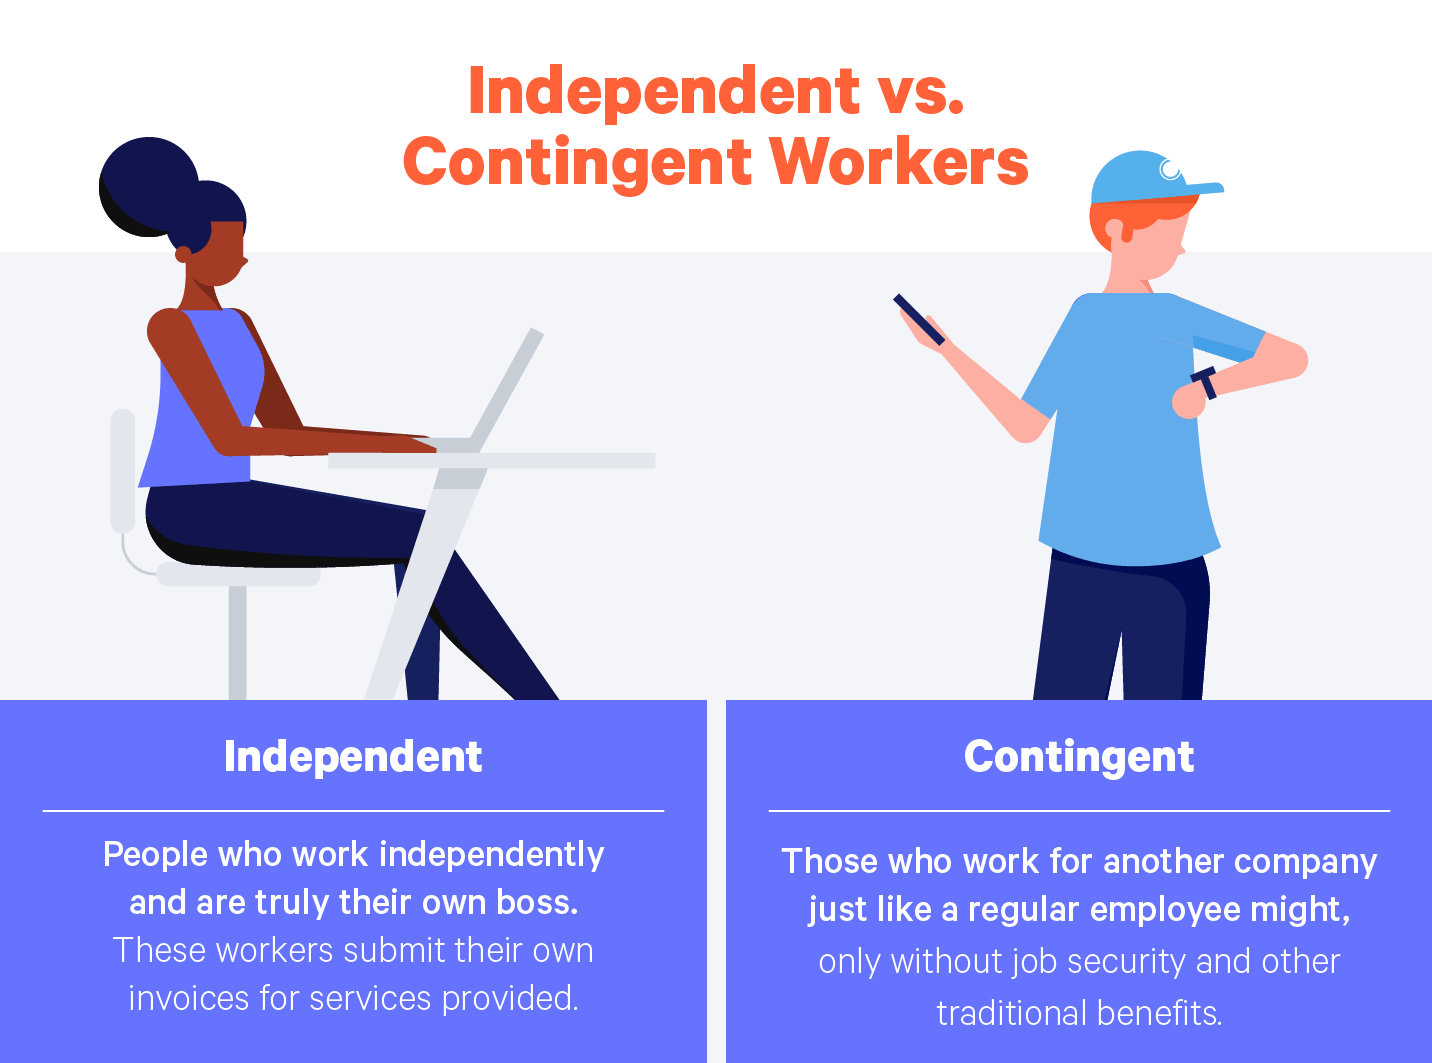 independent vs contingent workers illustration